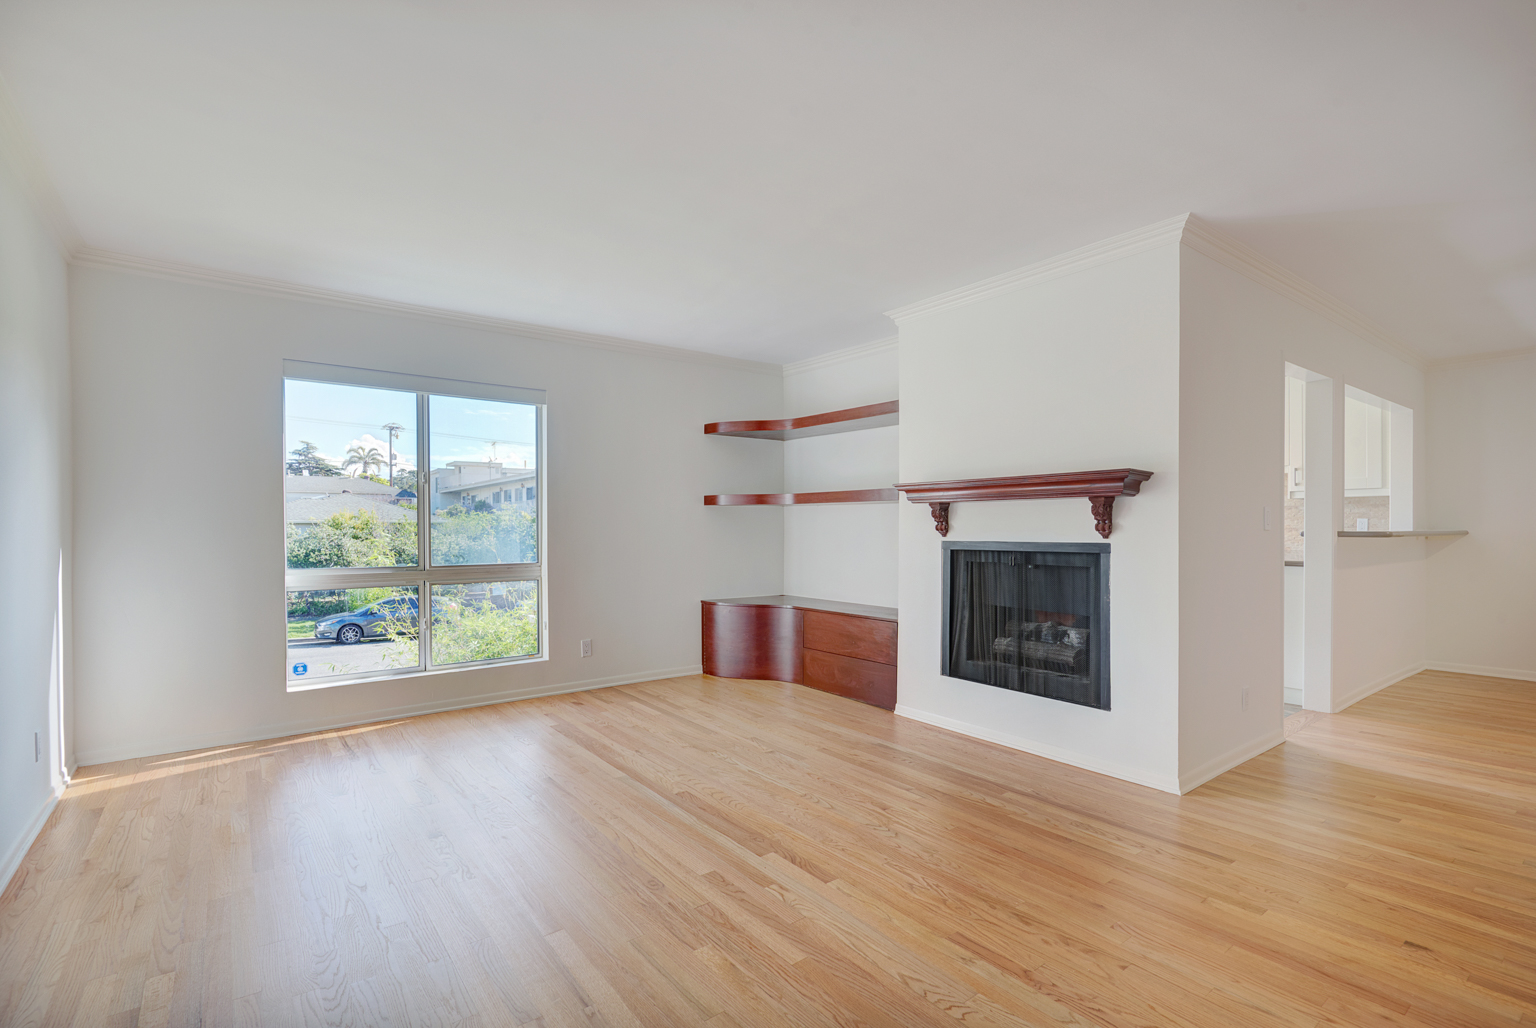 832 Euclid St #111,Santa Monica,California 90403,2 Bedrooms Bedrooms,2.5 BathroomsBathrooms,Apartment,Euclid St #111,1099